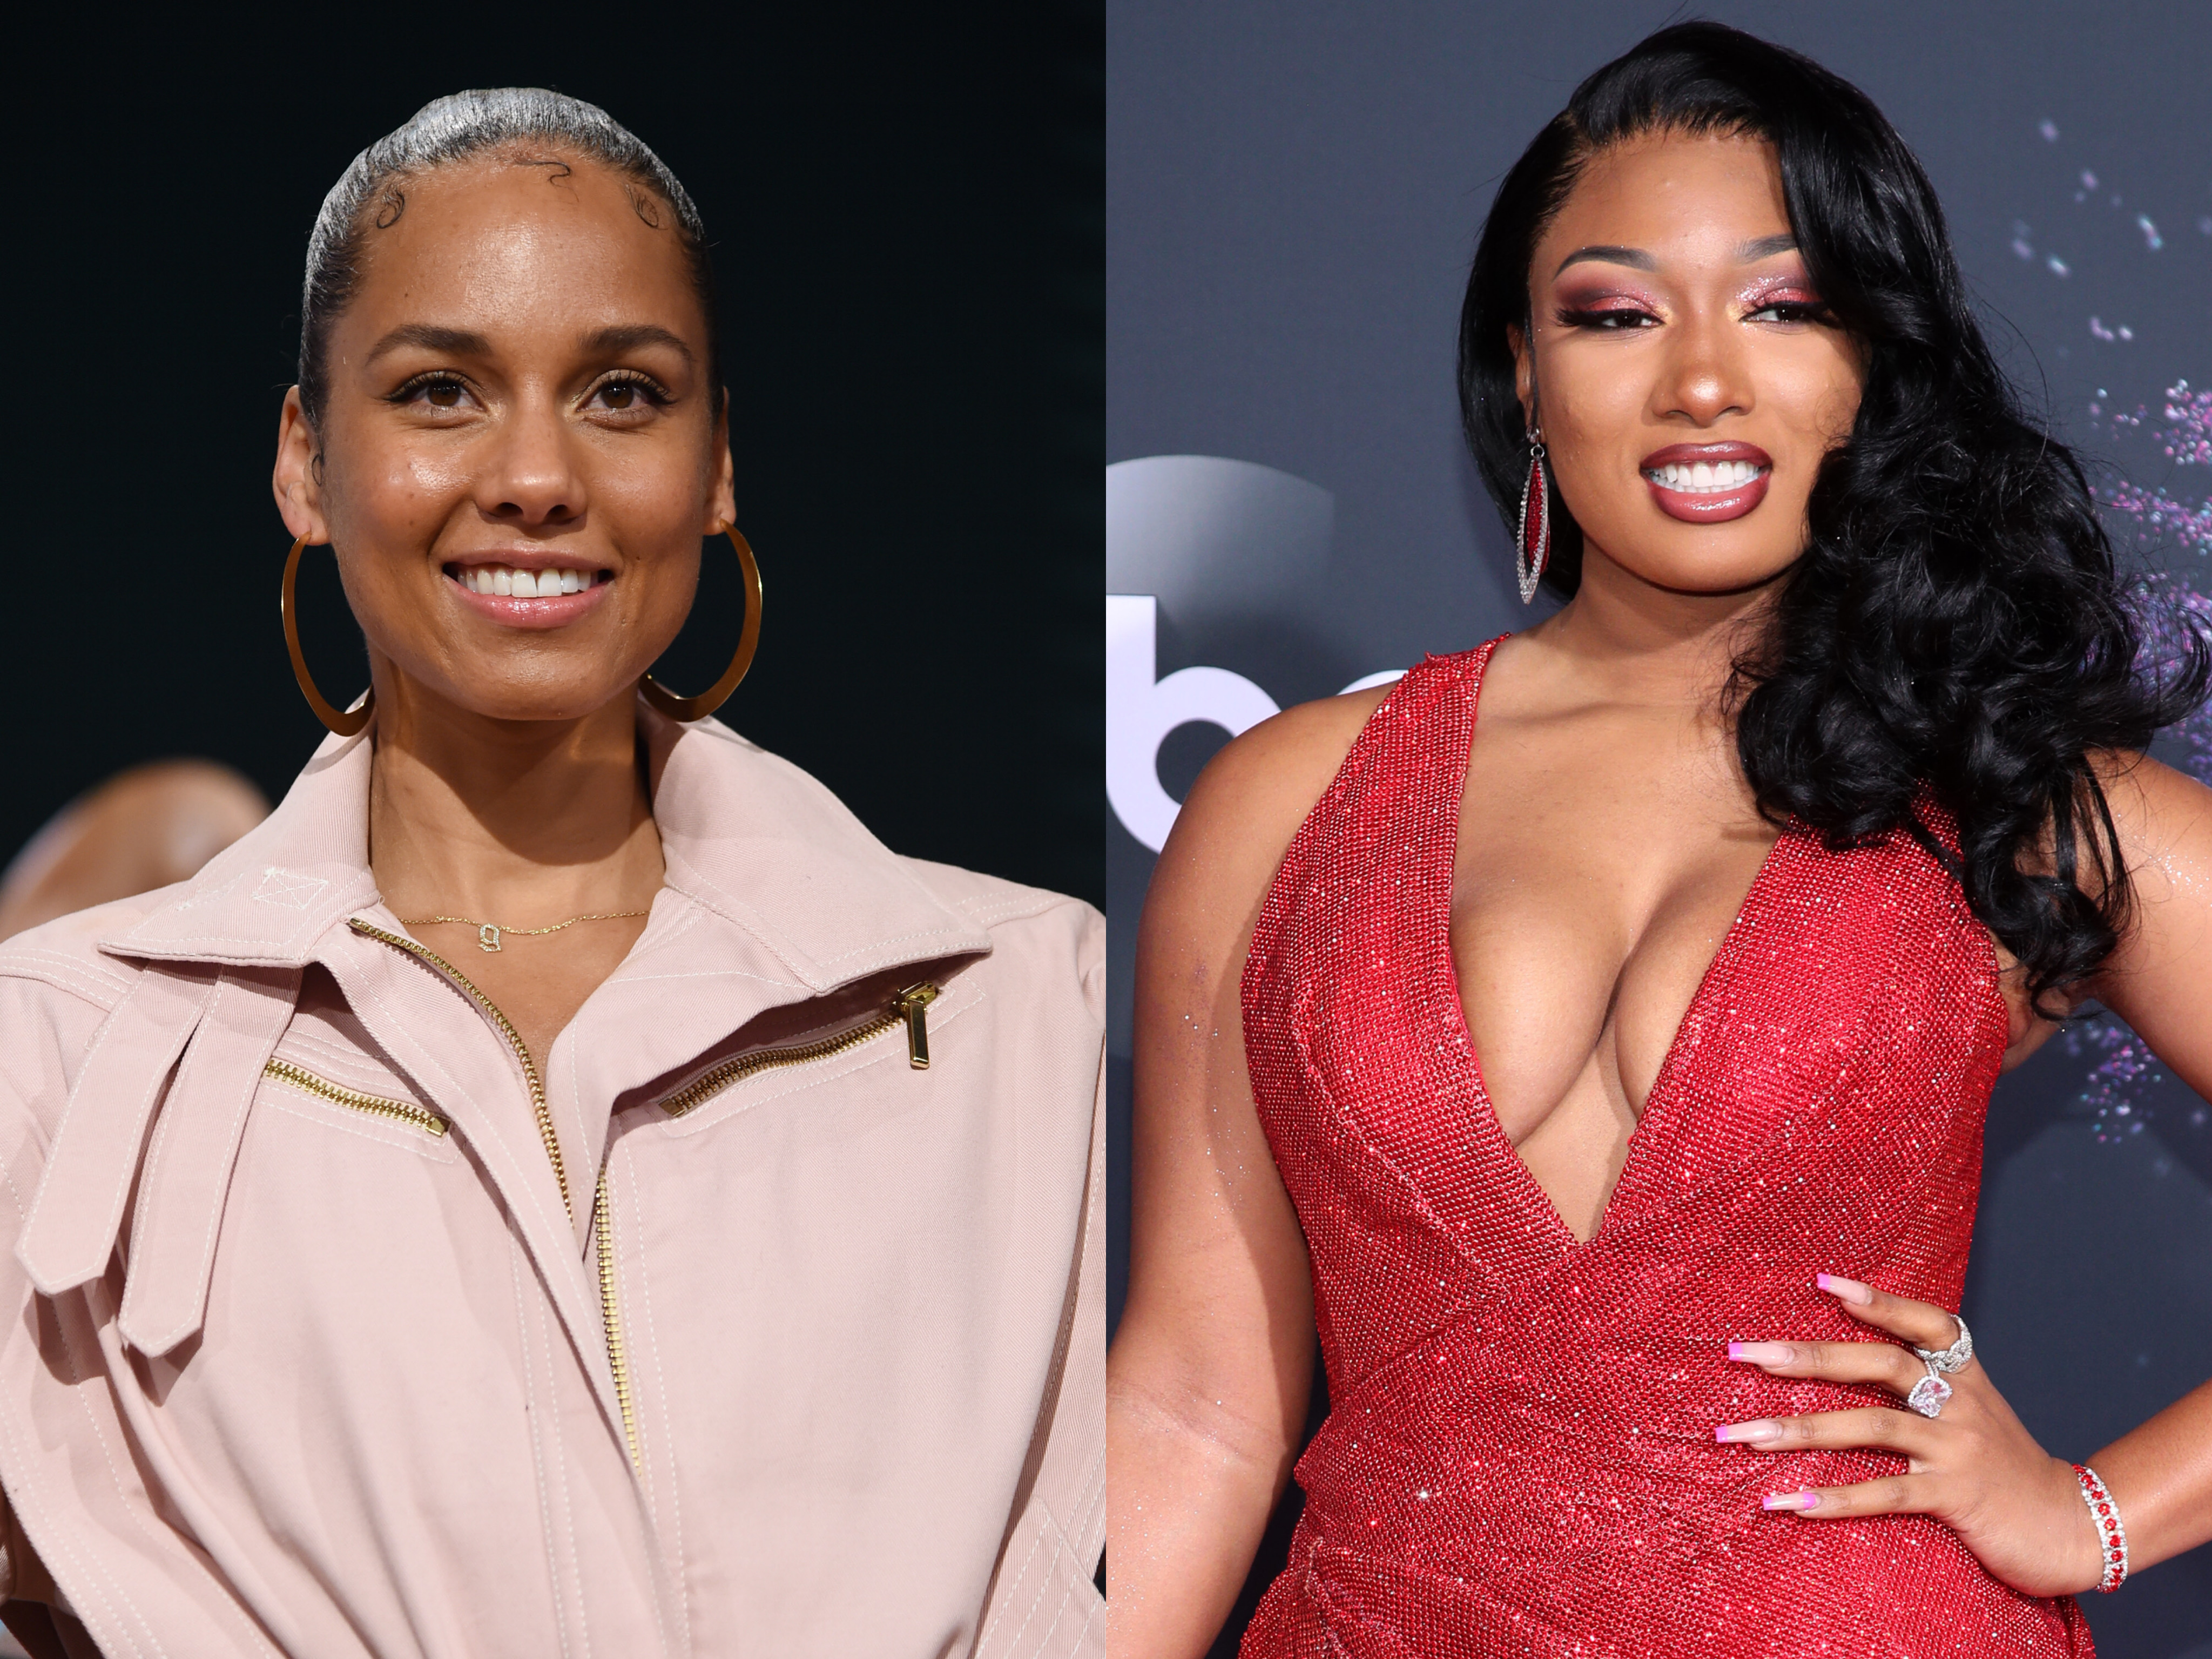 Megan Thee Stallion and Alicia Keys are among the many honorees for Billboard's 2019 Women In Music celebration happening this month.